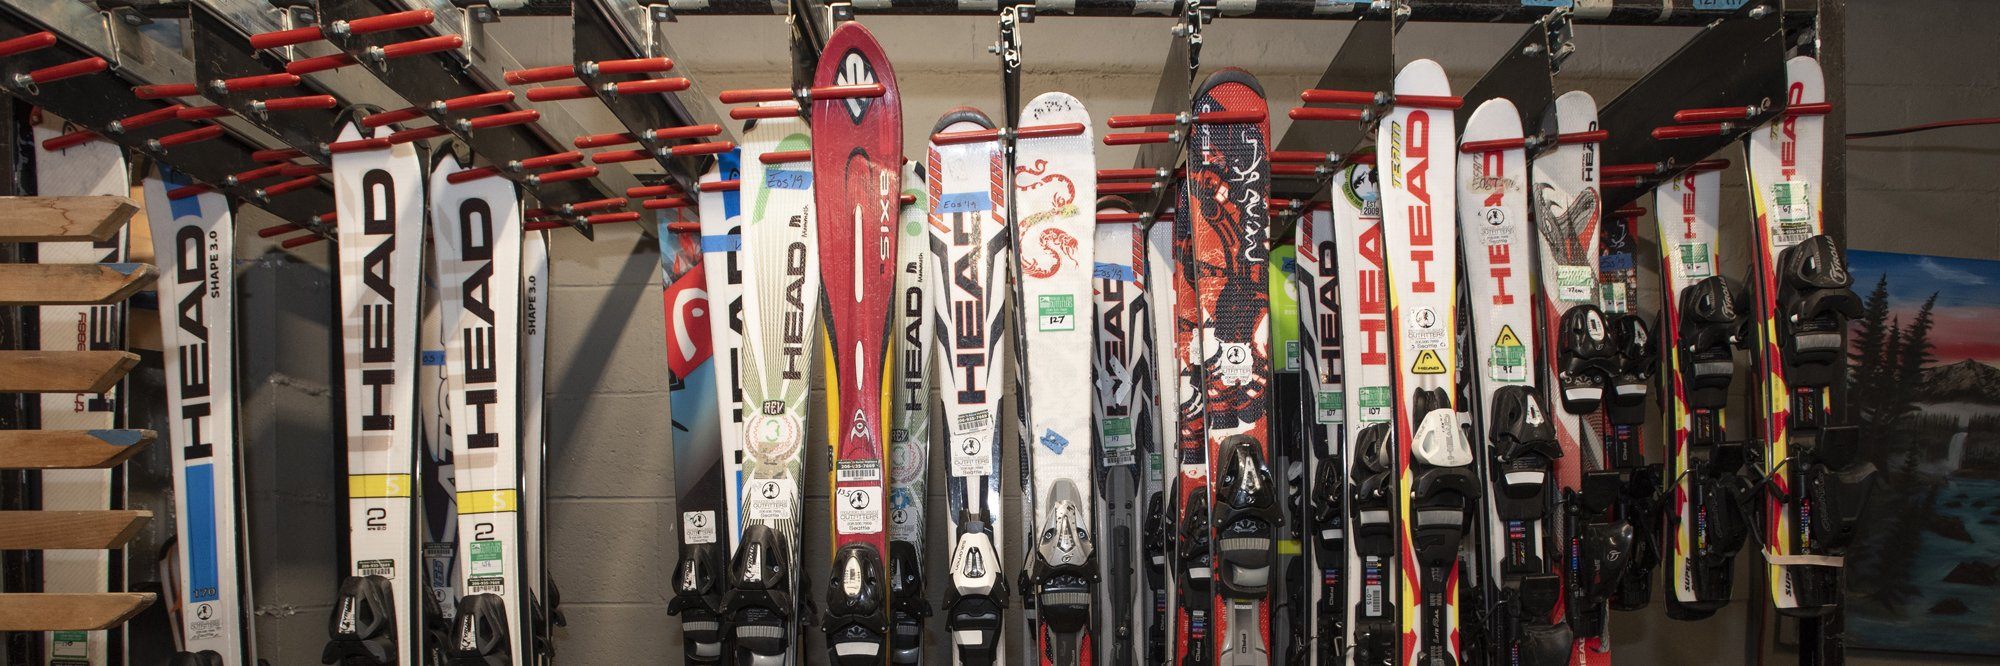 Ski and Snowboard Season, Daily and Weekend Rentals for Youth and Adults in West Seattle